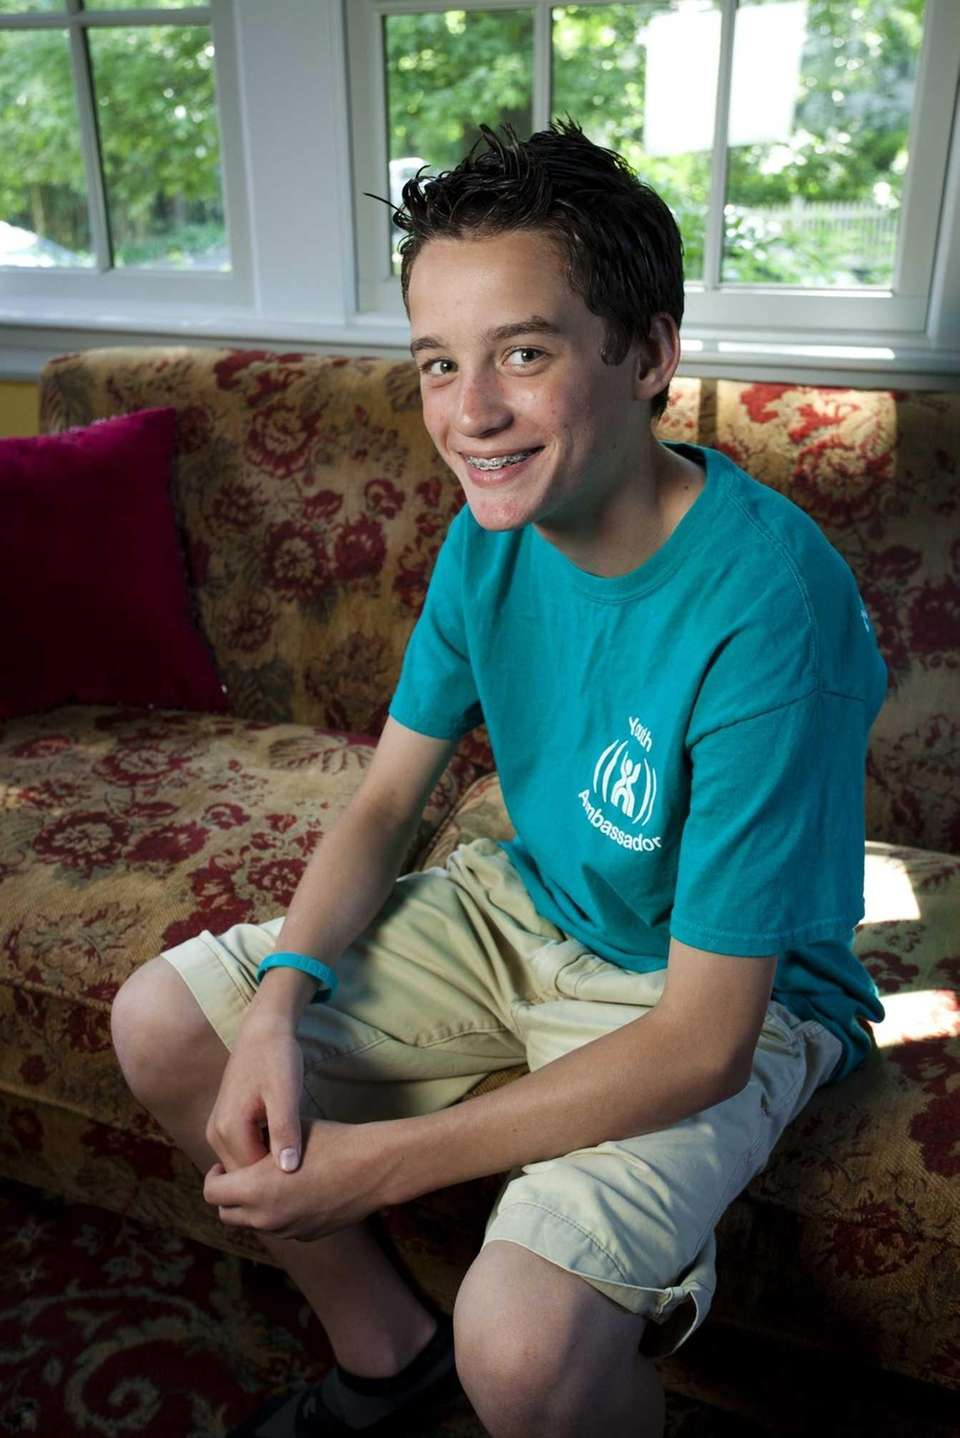 Dylan Brady, 14, of Sea Cliff is a